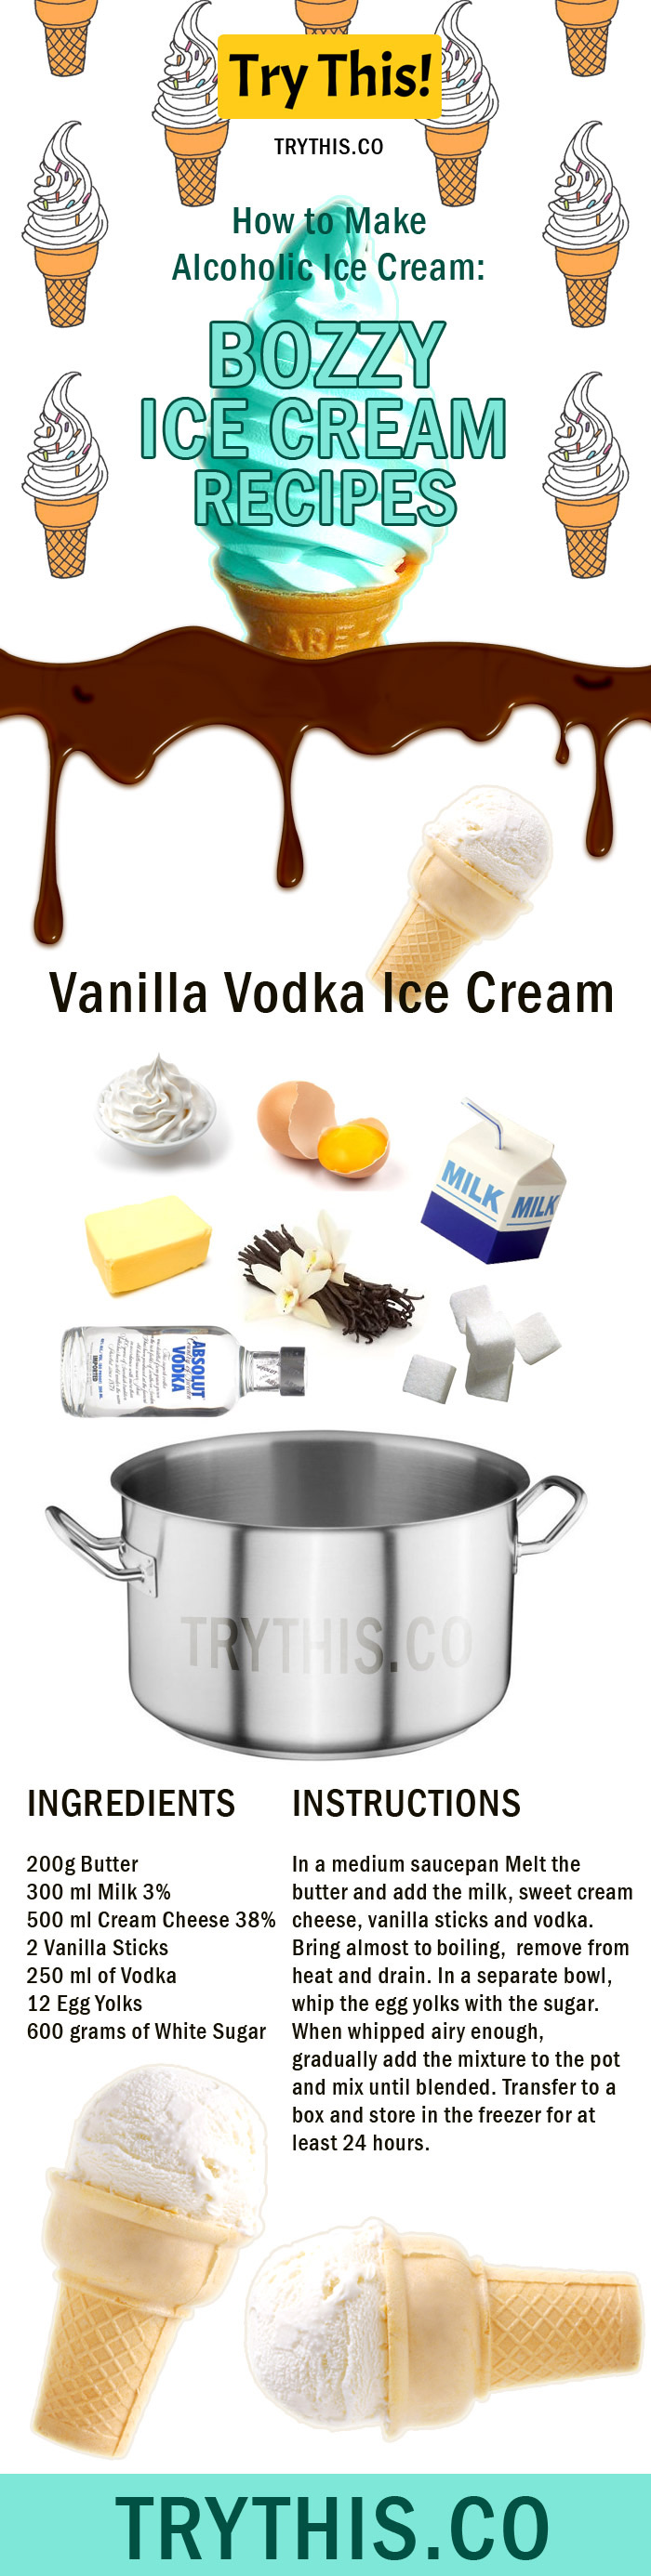 Whipped Cream Vodka Food Recipes